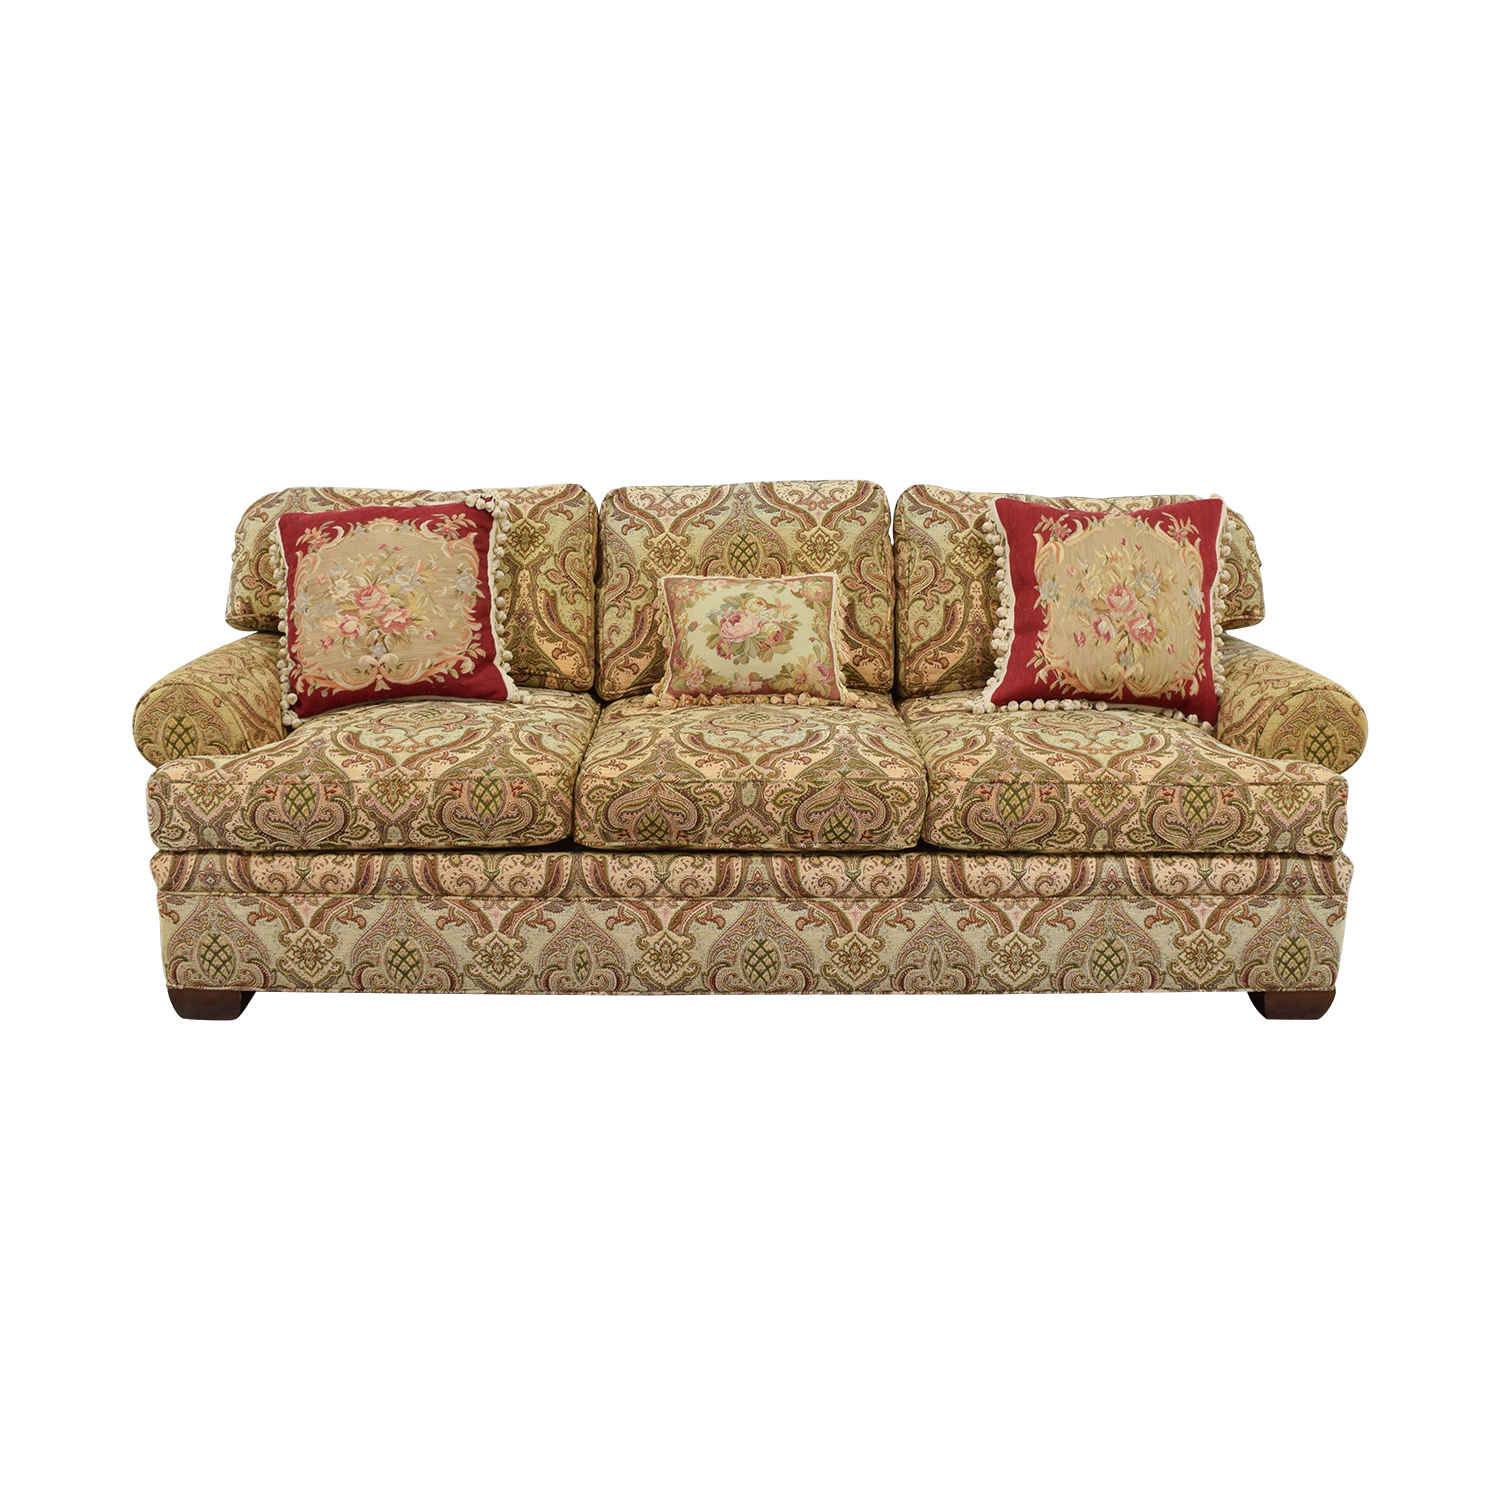 shop Kravet Custom Chenille Paisley Three-Cushion Sofa Kravet Sofas